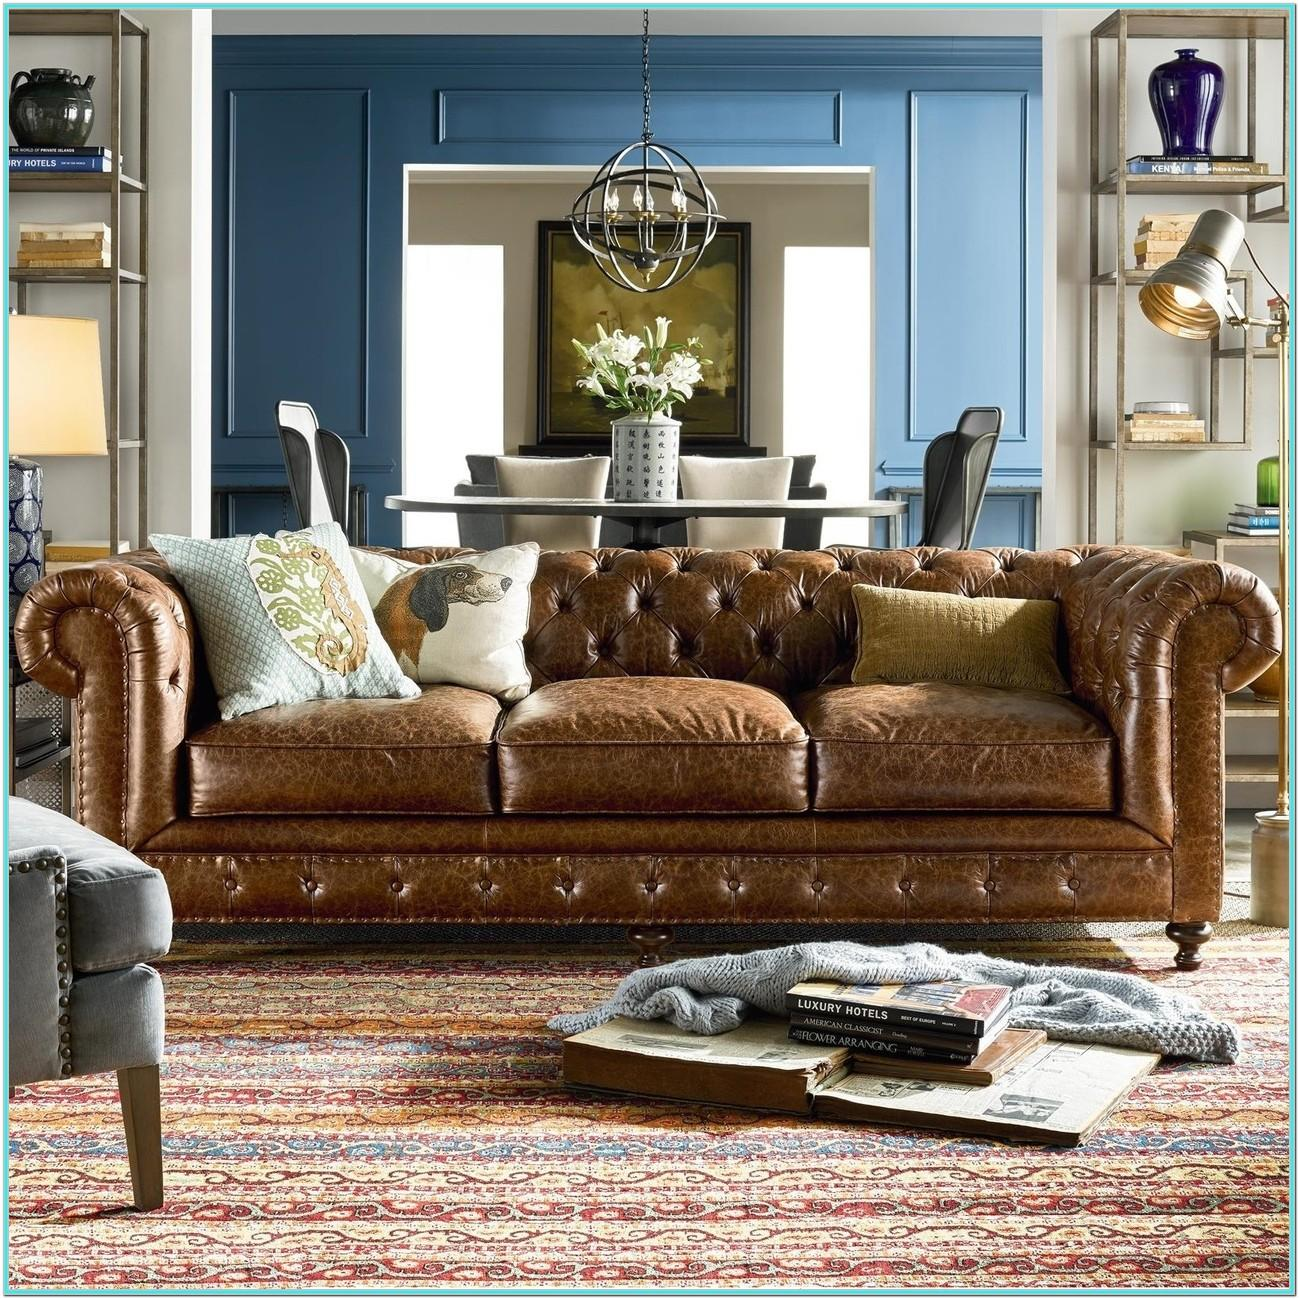 Leather Chesterfield Sofa Living Room Ideas